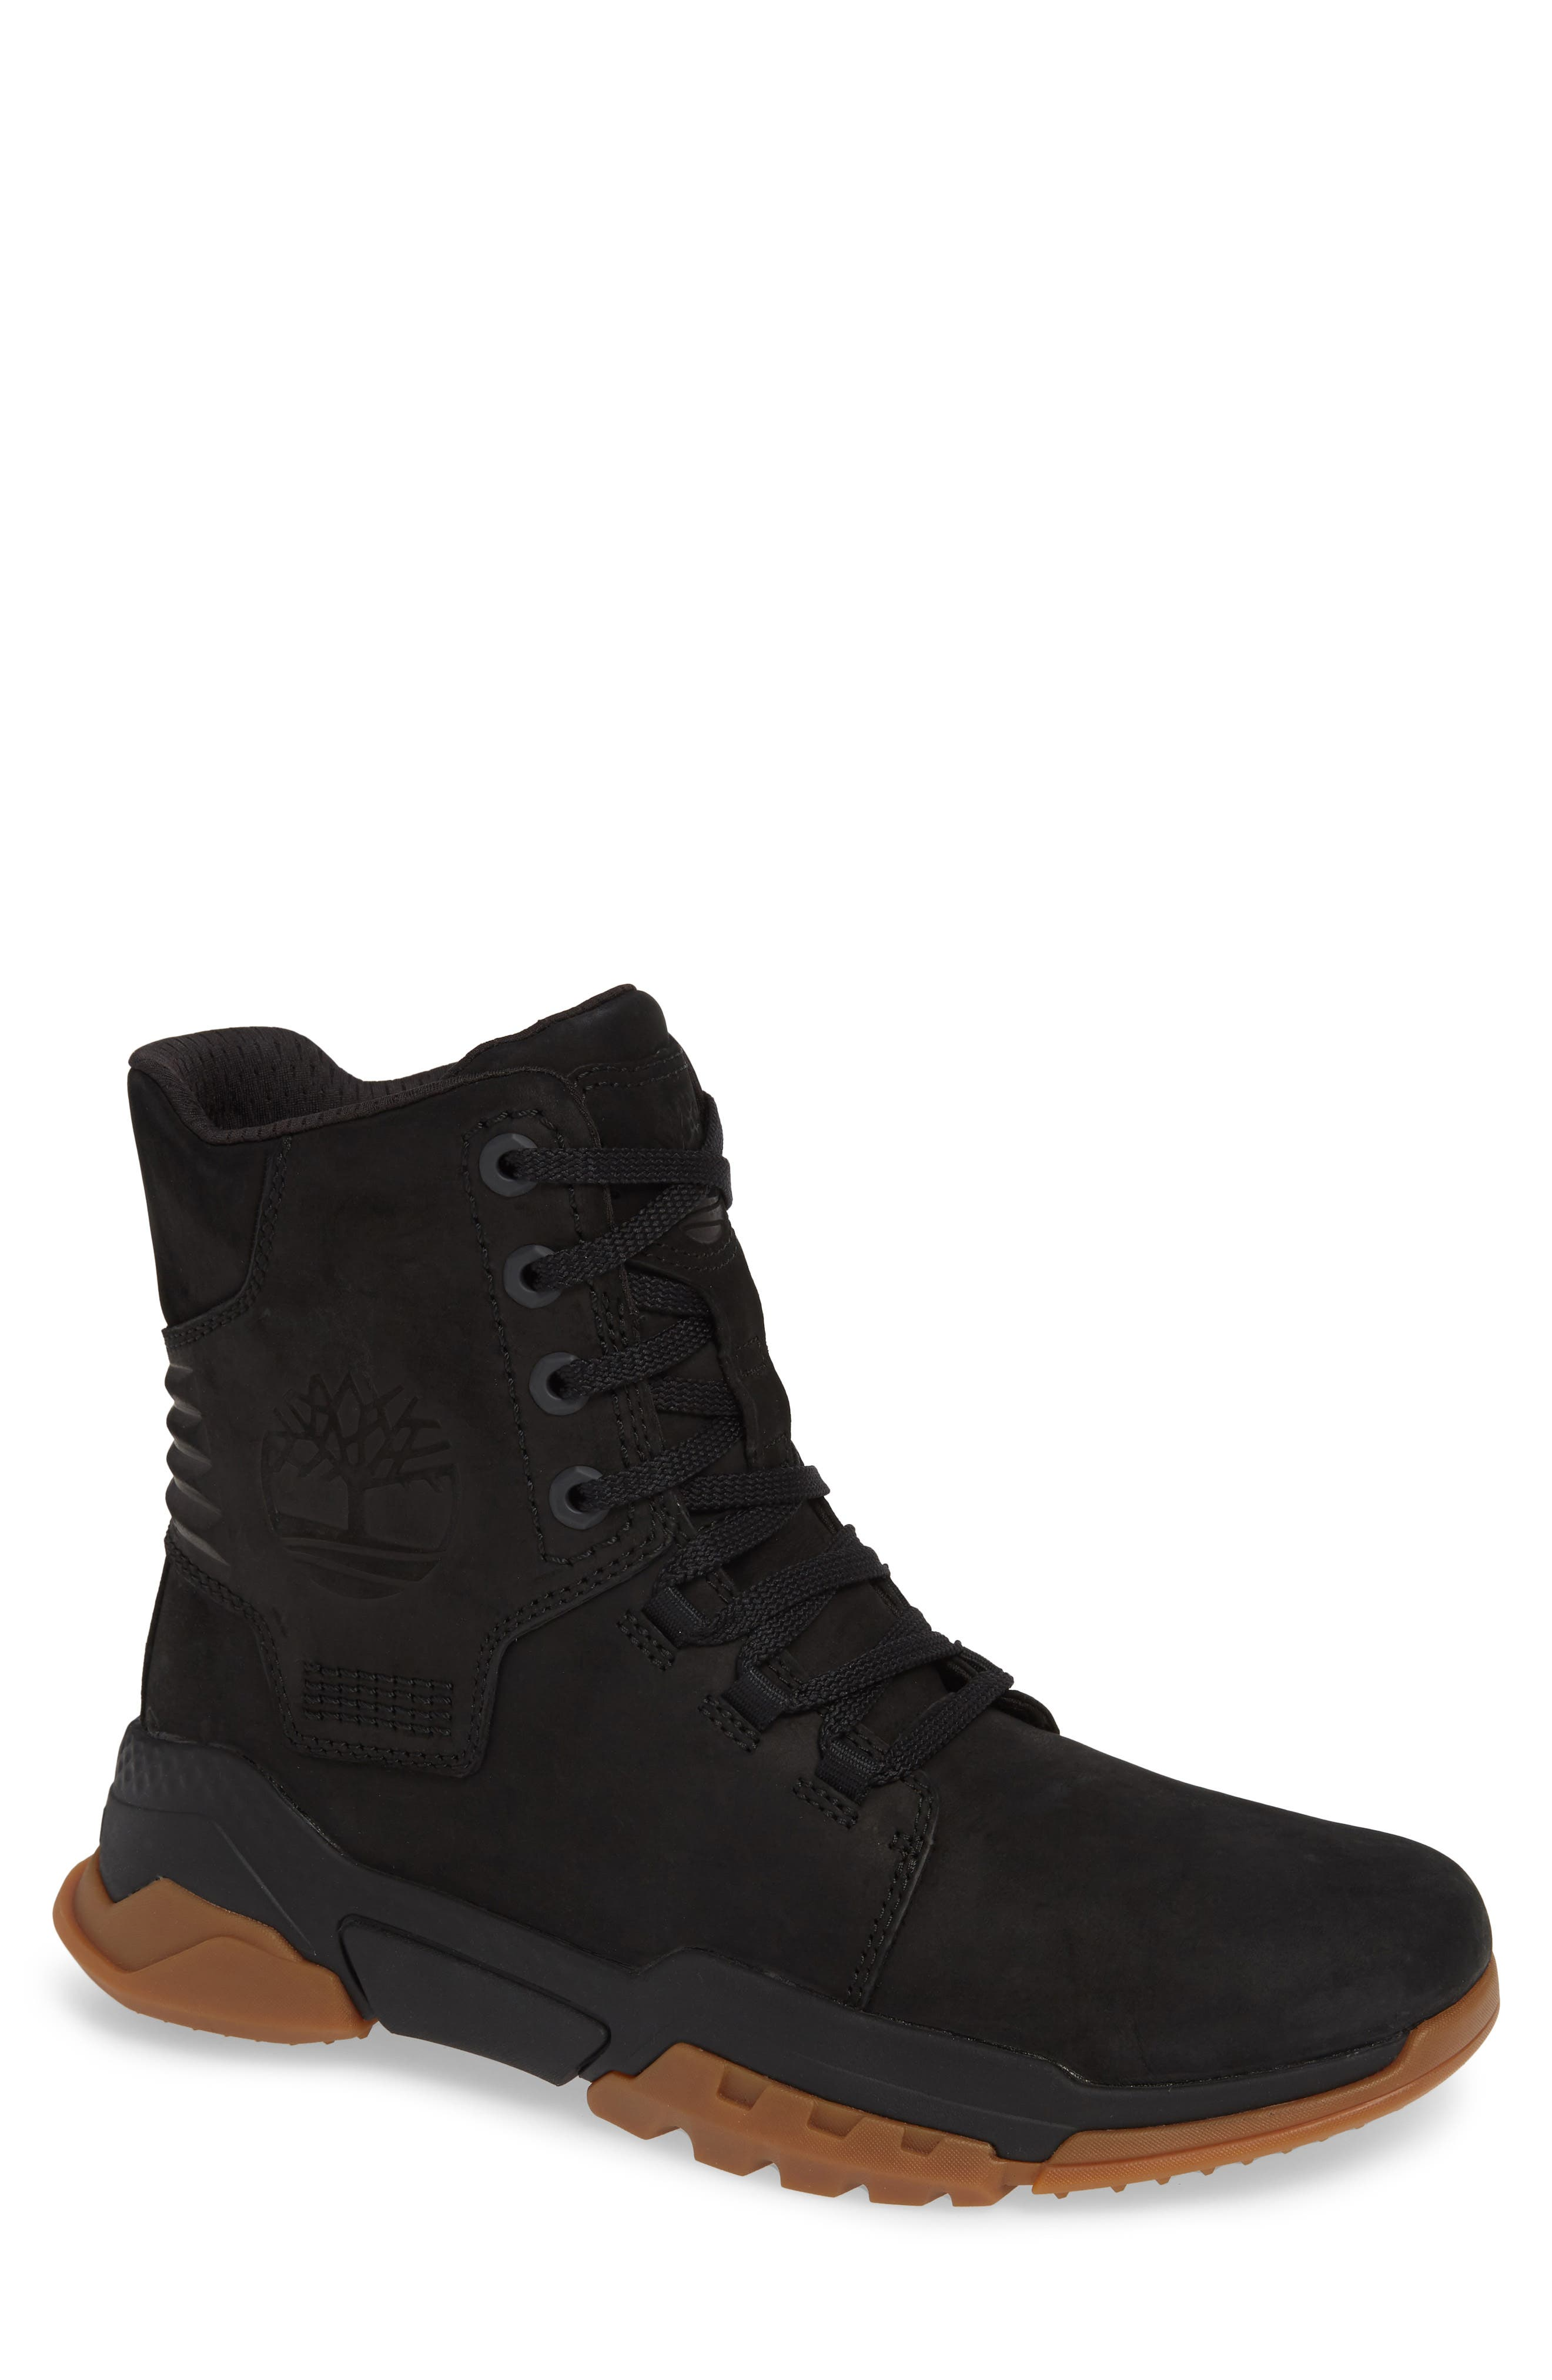 TIMBERLAND, City Force Reveal Plain Toe Boot, Main thumbnail 1, color, BLACK LEATHER/ NEOPRENE